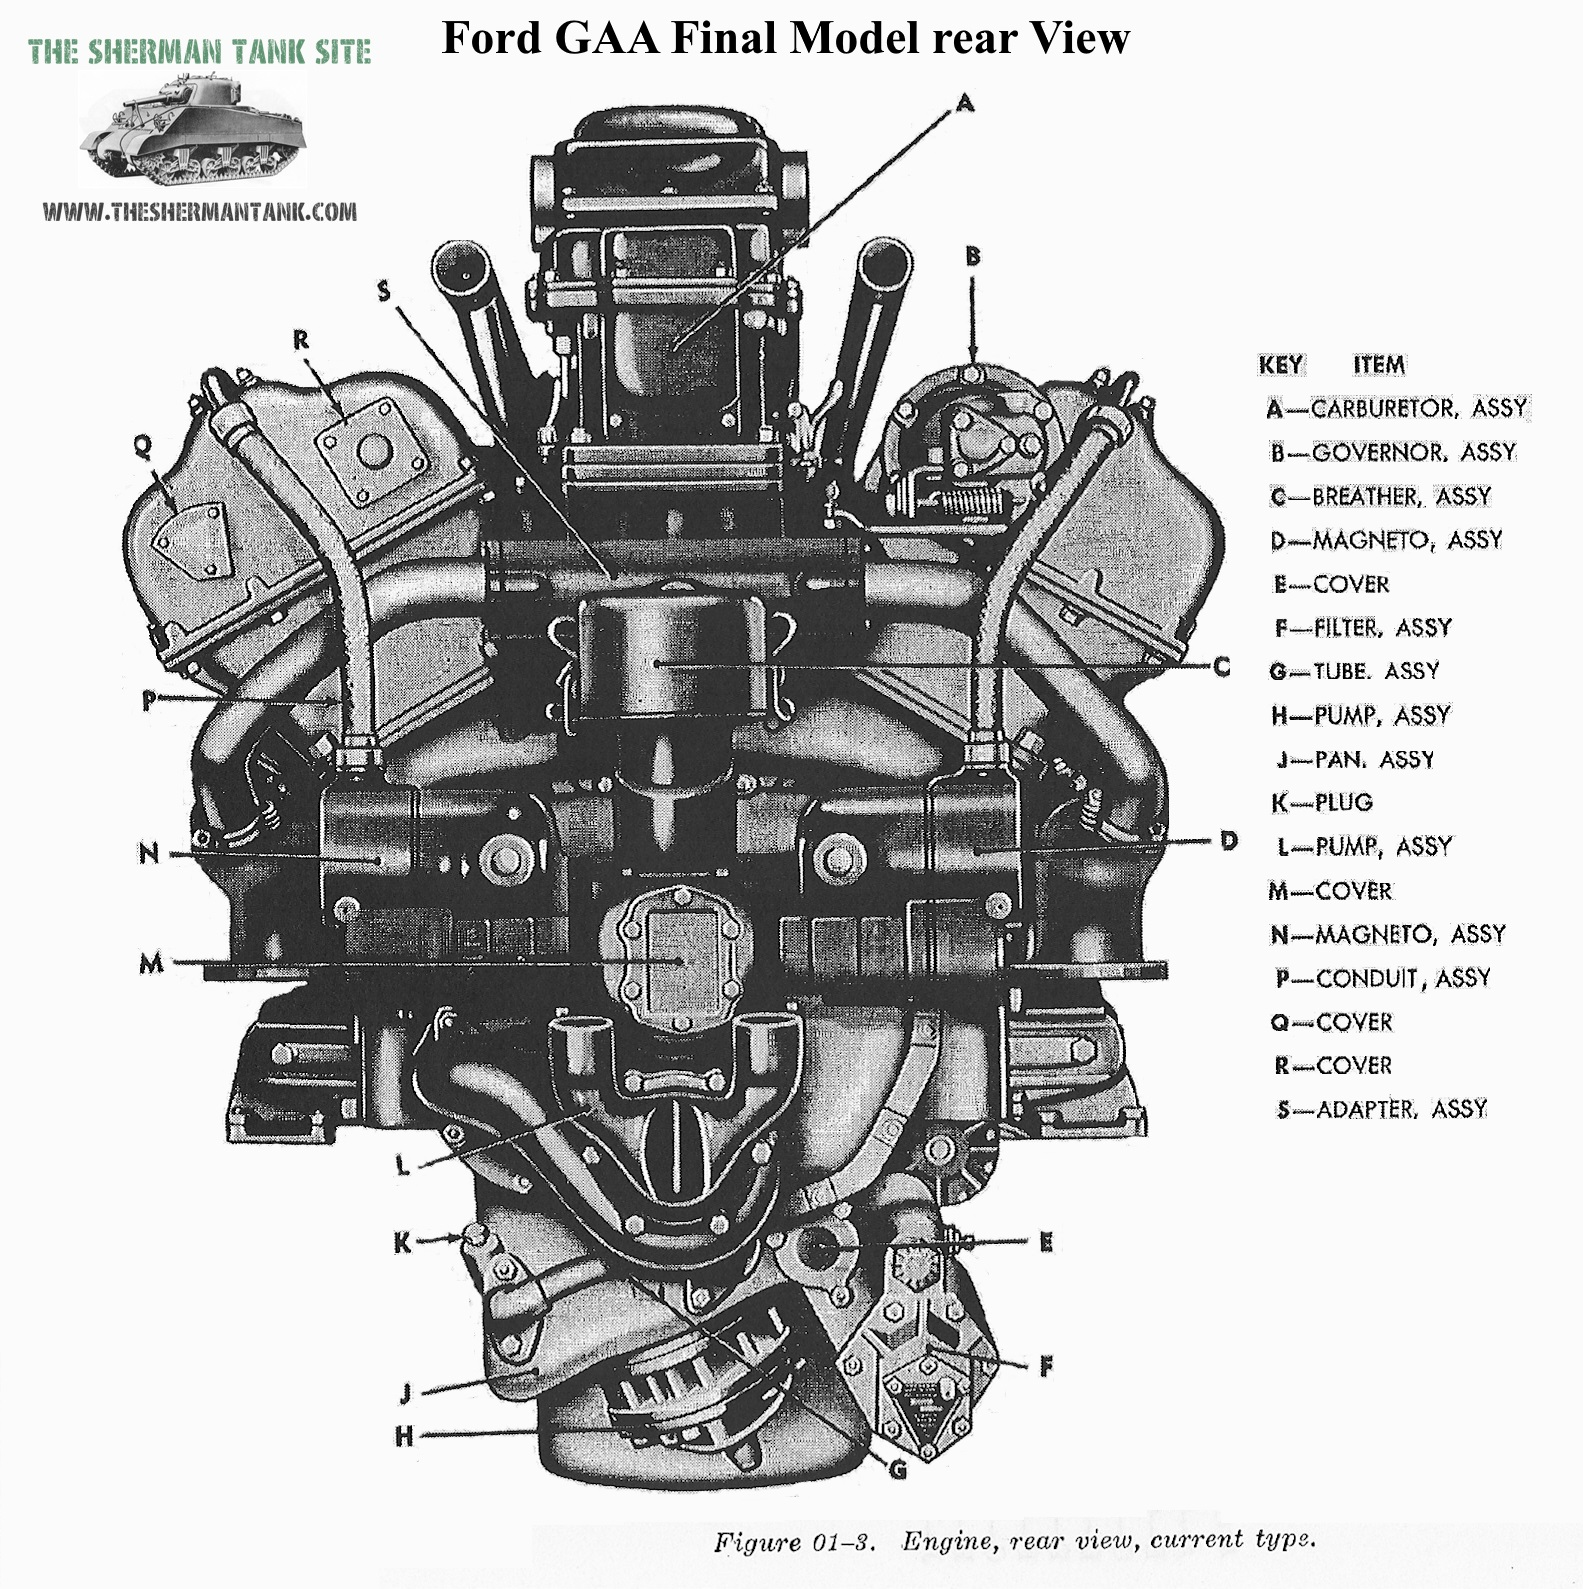 the ford gaa data page more info and technical drawings and manual rh theshermantank com Maybach V12 Engine Maybach SUV